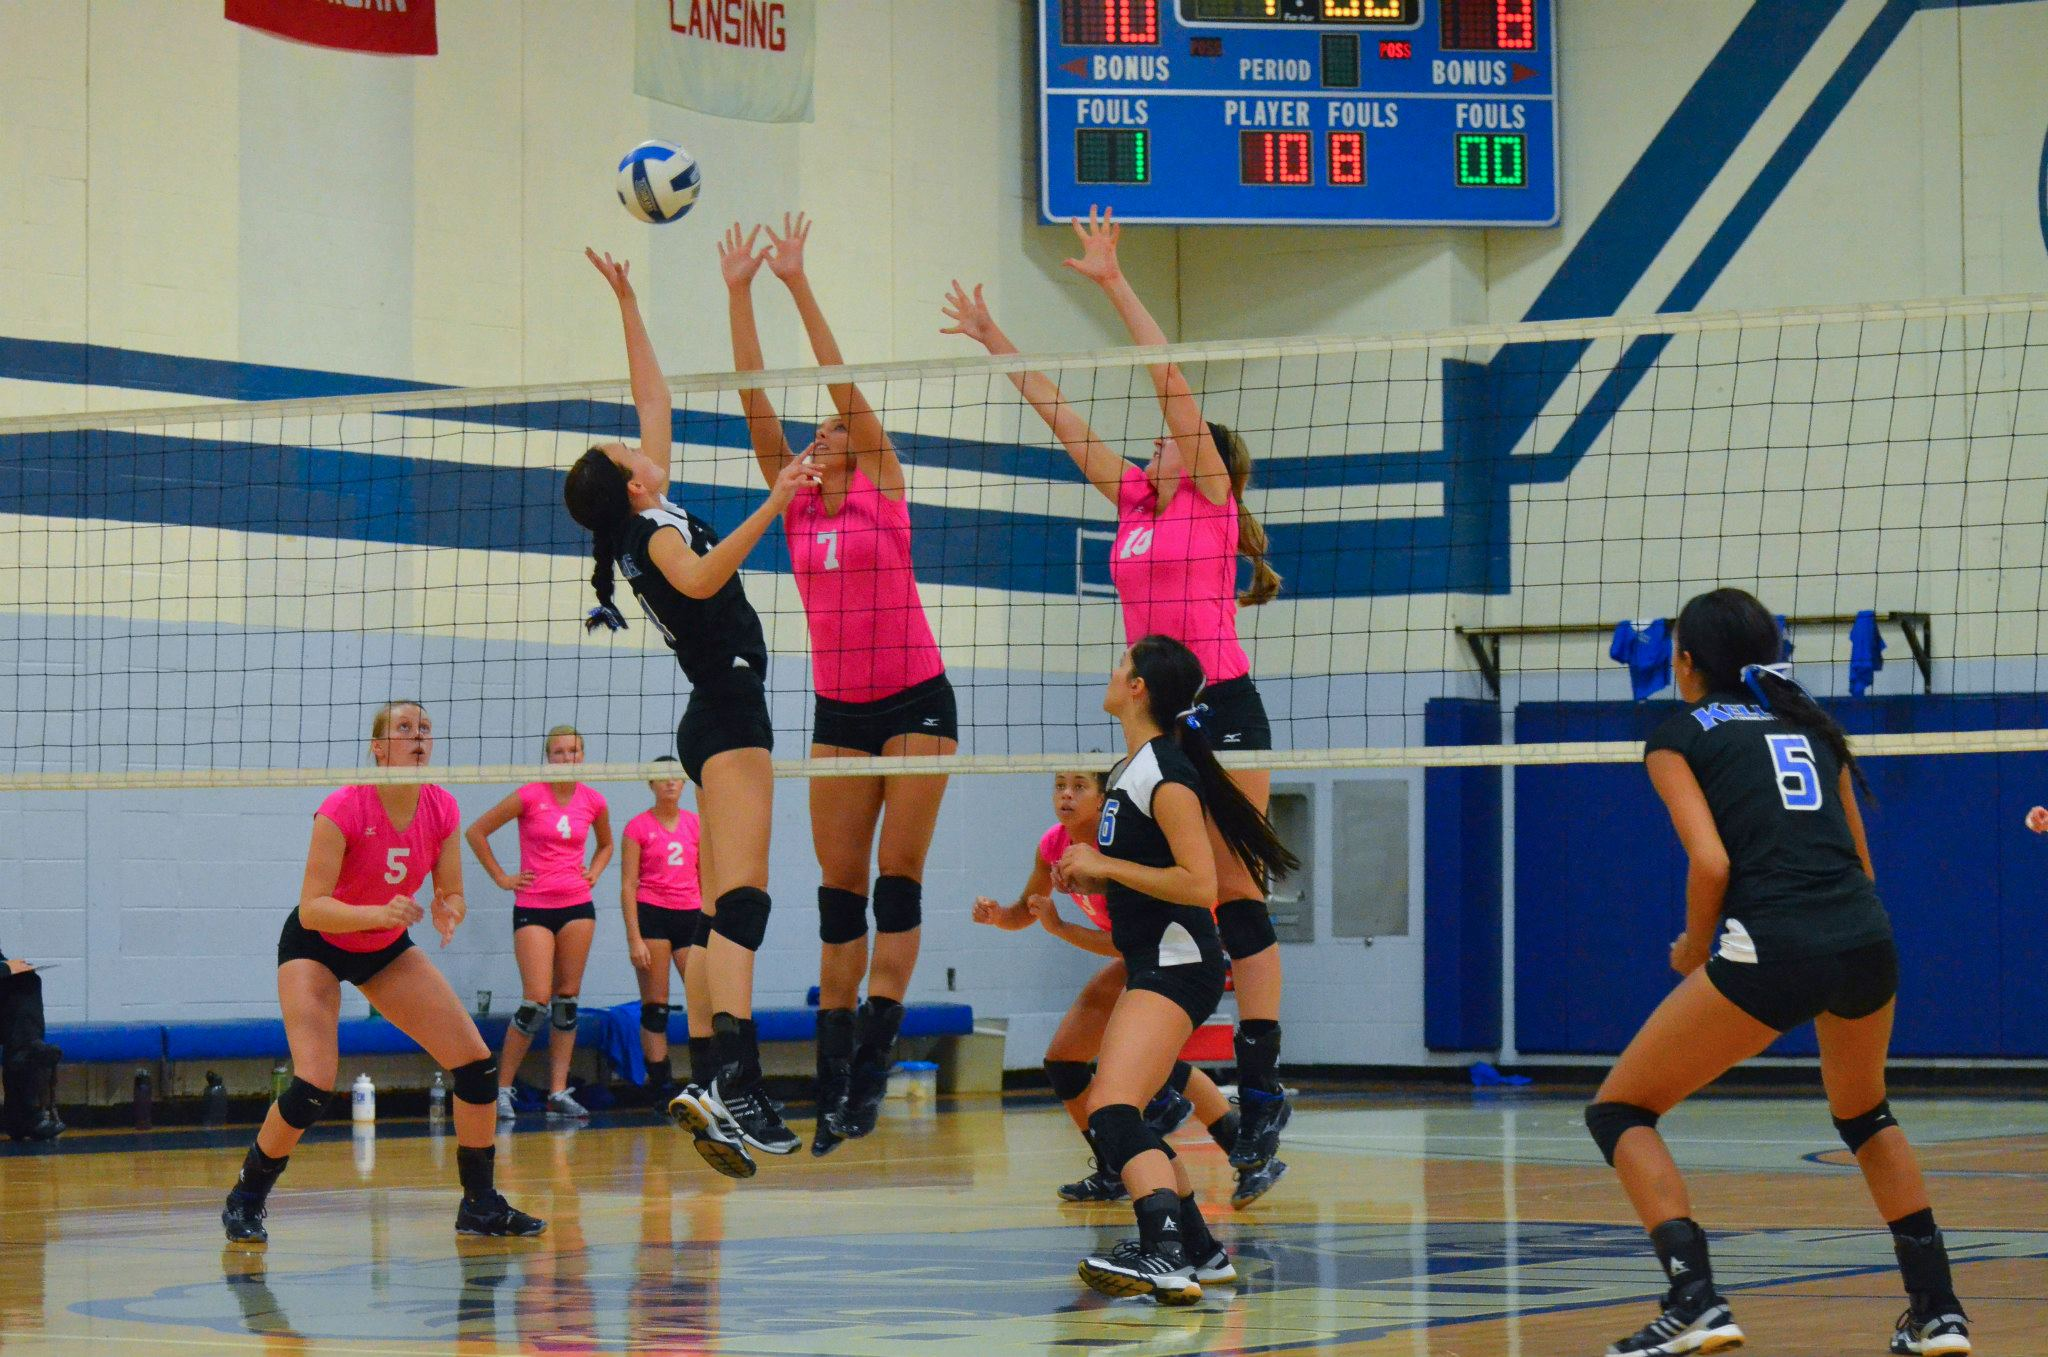 Kcc Women's Volleyball Falls To Lansing In Three Sets At. Clinical Mental Health Counseling. Graduate Universities In California. Free Business Accounting Software. Email And Website Hosting Services. World S Largest Bathtub Olympia Pet Emergency. Premier America Life Insurance. Personal Injury Lawyer Worcester Ma. Registered Health Information Technician Rhit